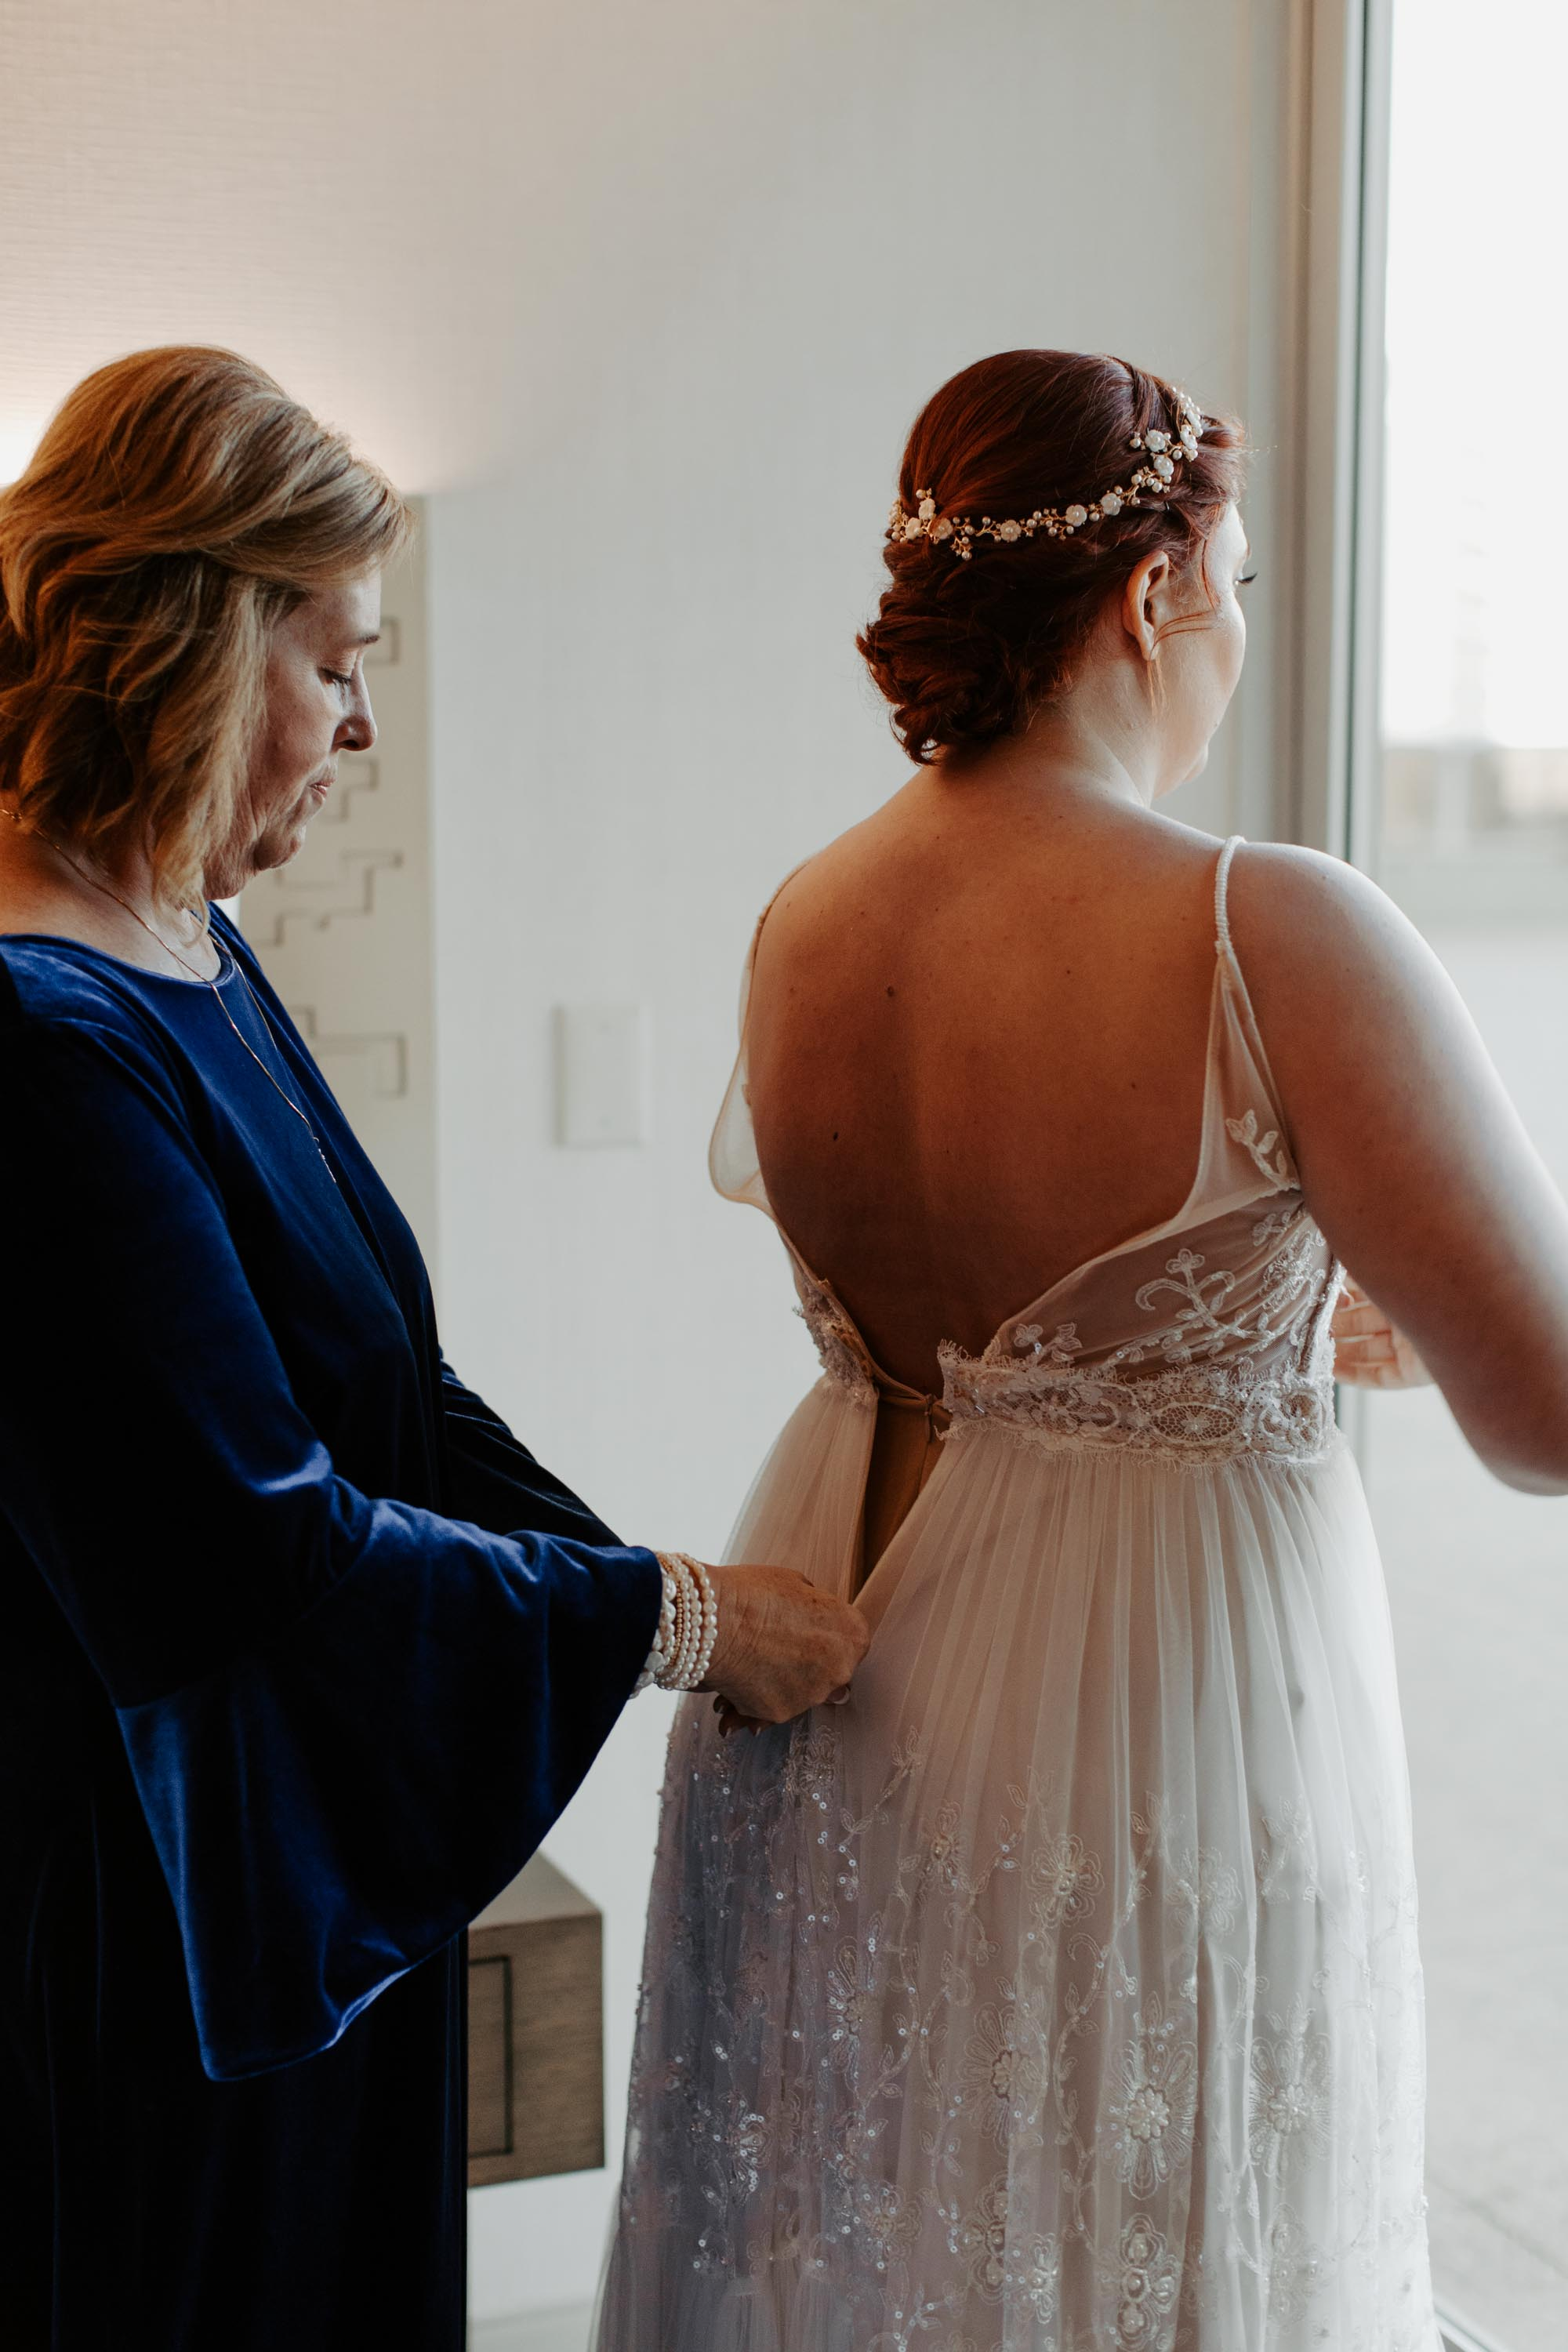 Bride putting on wedding dress on her Dallas TX wedding day